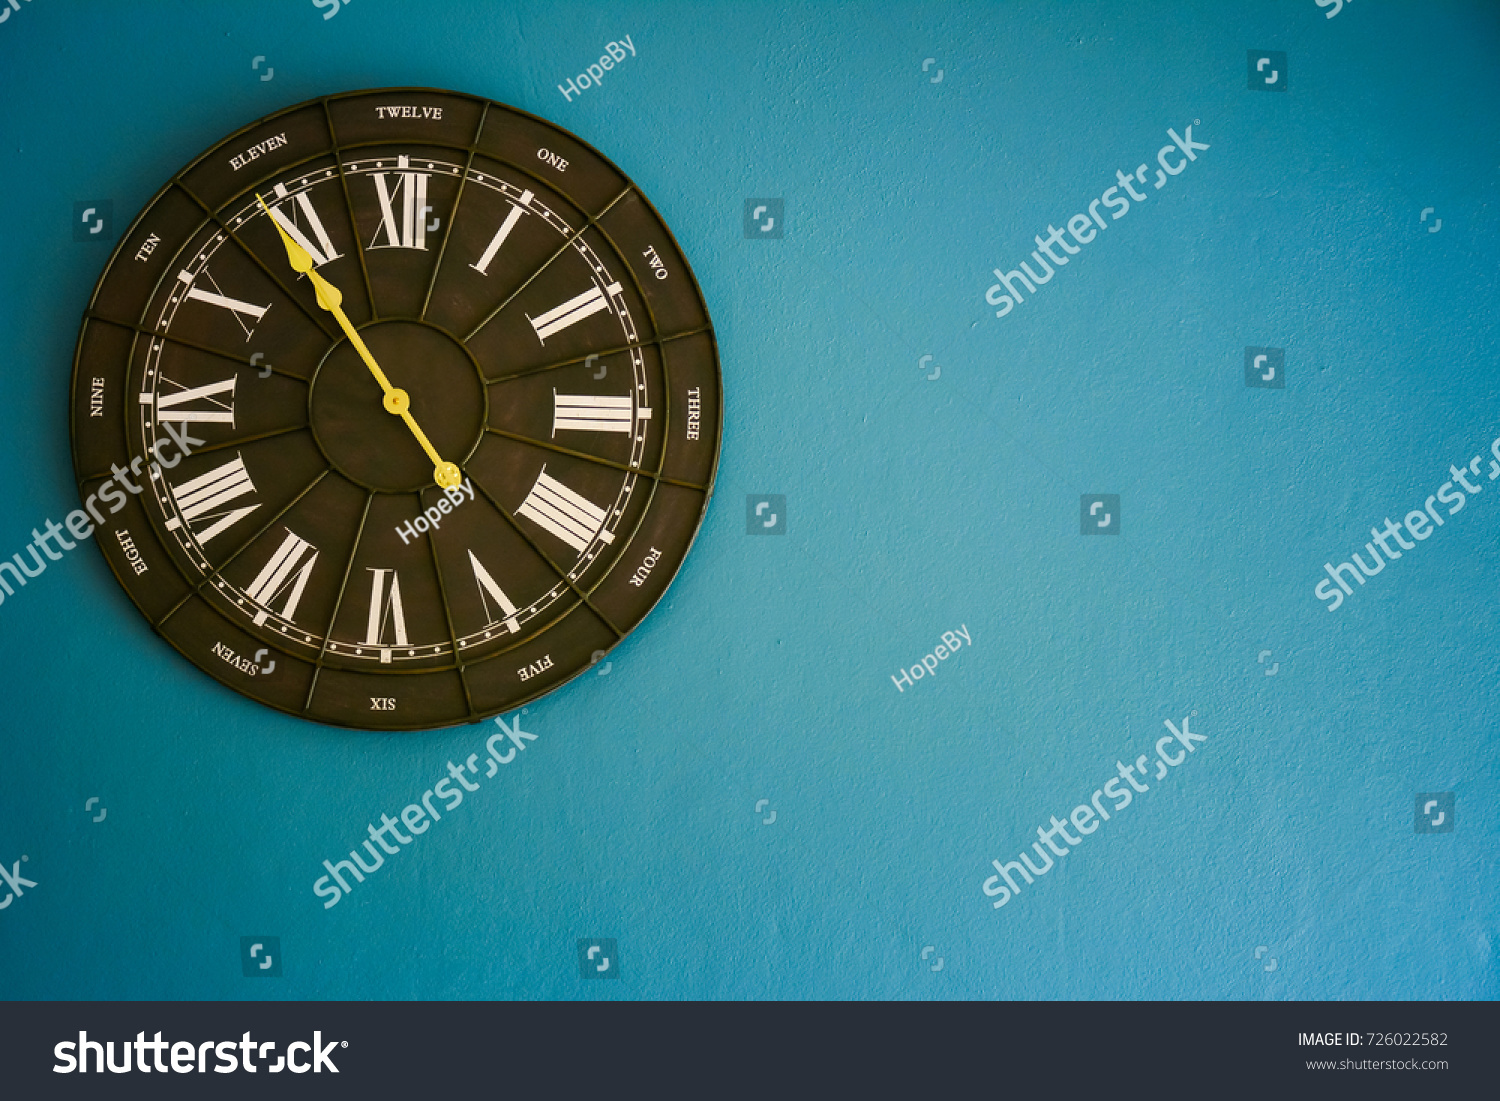 Analog vintage clock over blue wall.